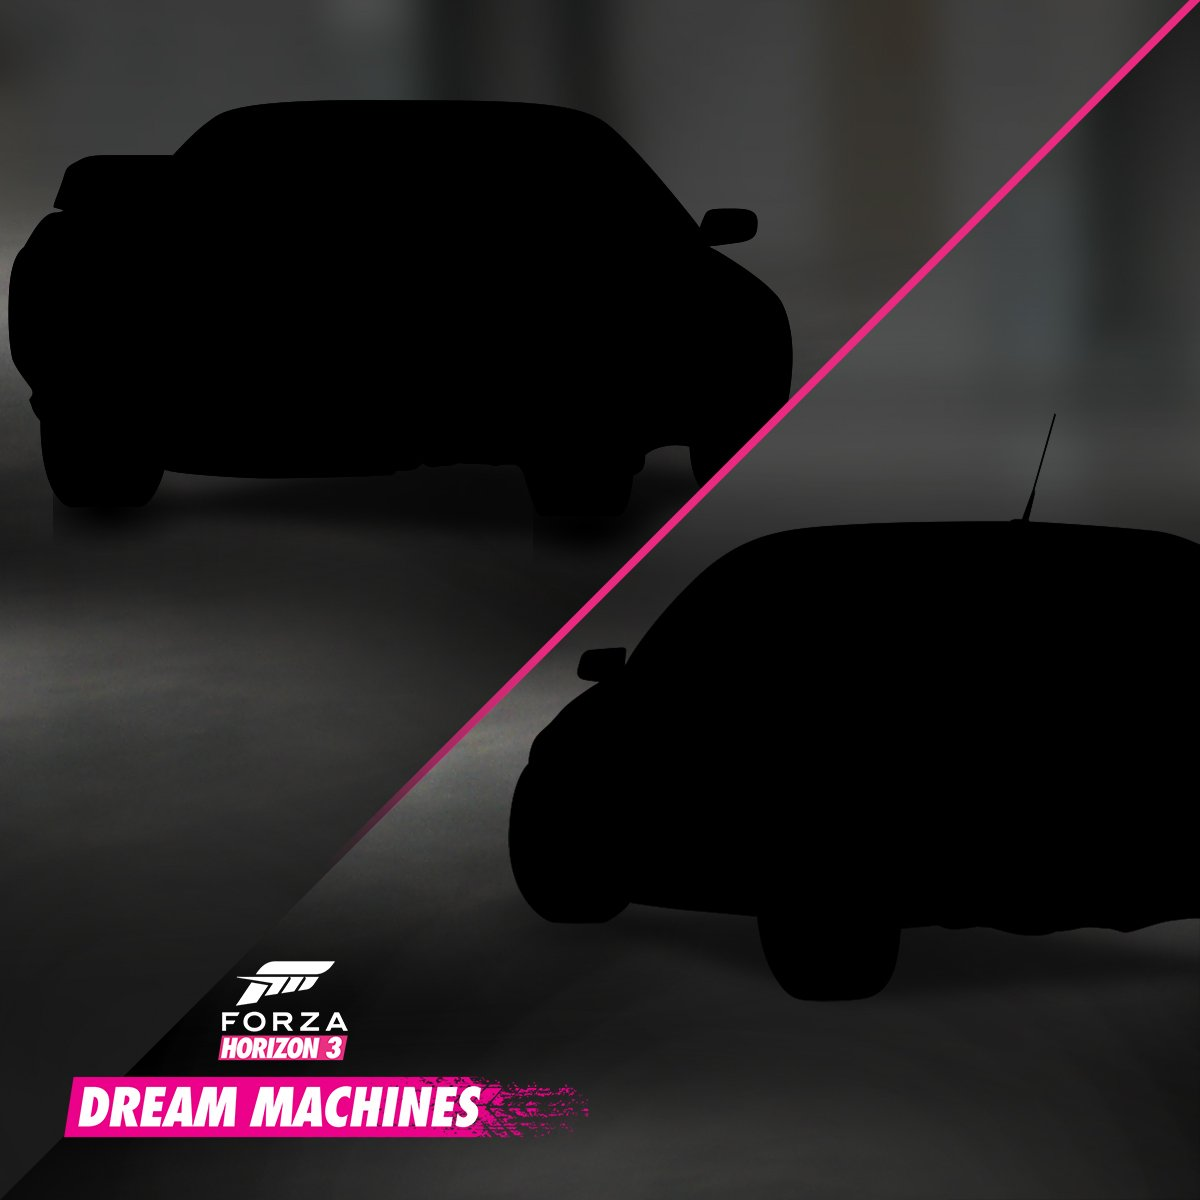 What are the Dream Machines? We're revealing something BIG soon! https://t.co/d19q7UQ6Ox